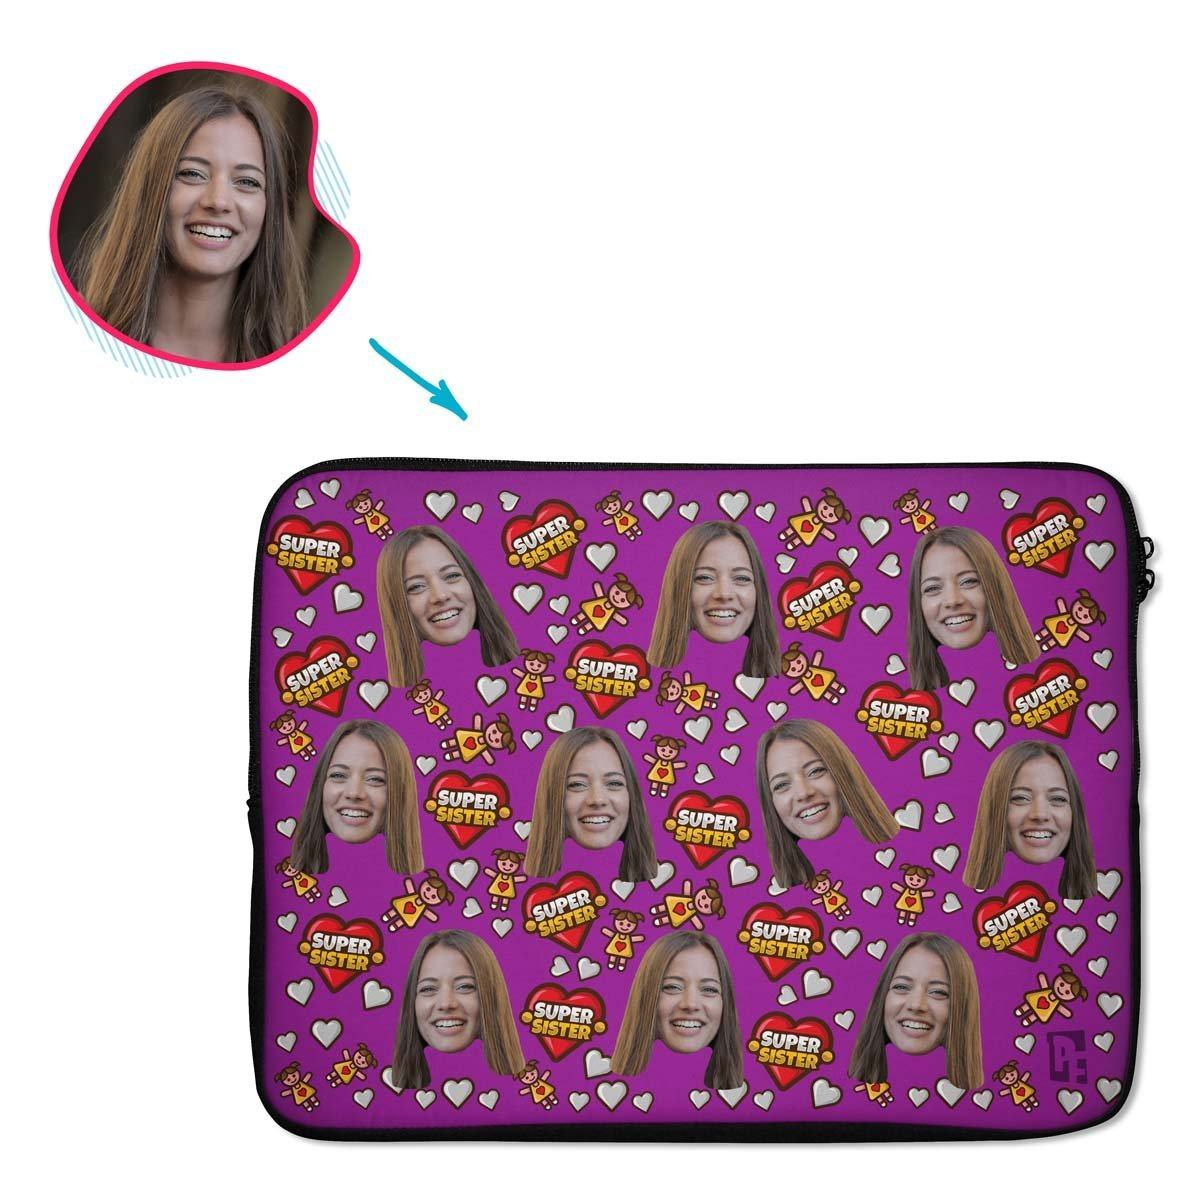 purple Super Sister laptop sleeve personalized with photo of face printed on them